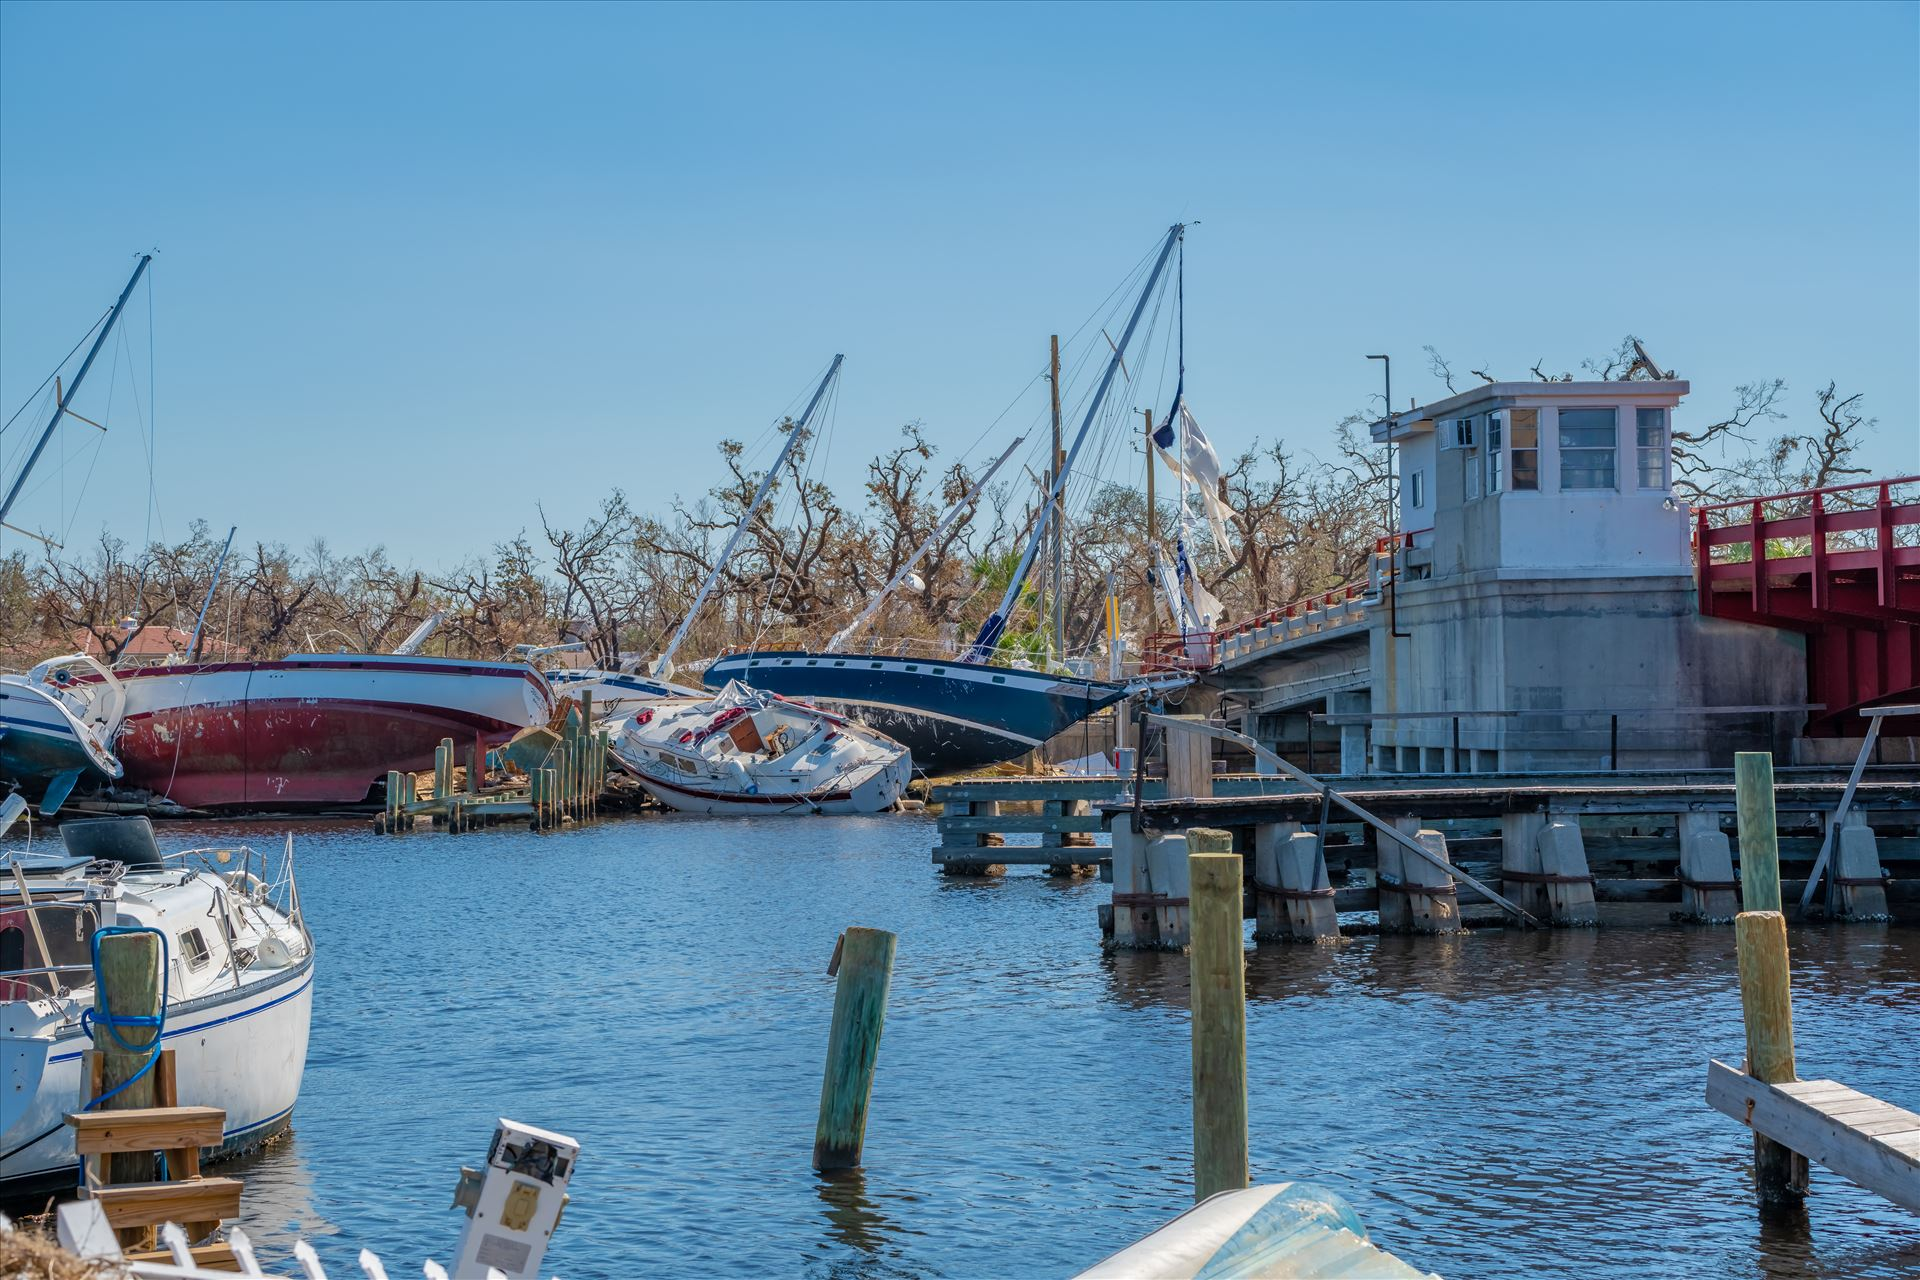 Hurricane Michael Hurricane Michael destroys sailboats in Massalina bayou, Panama City, Florida by Terry Kelly Photography